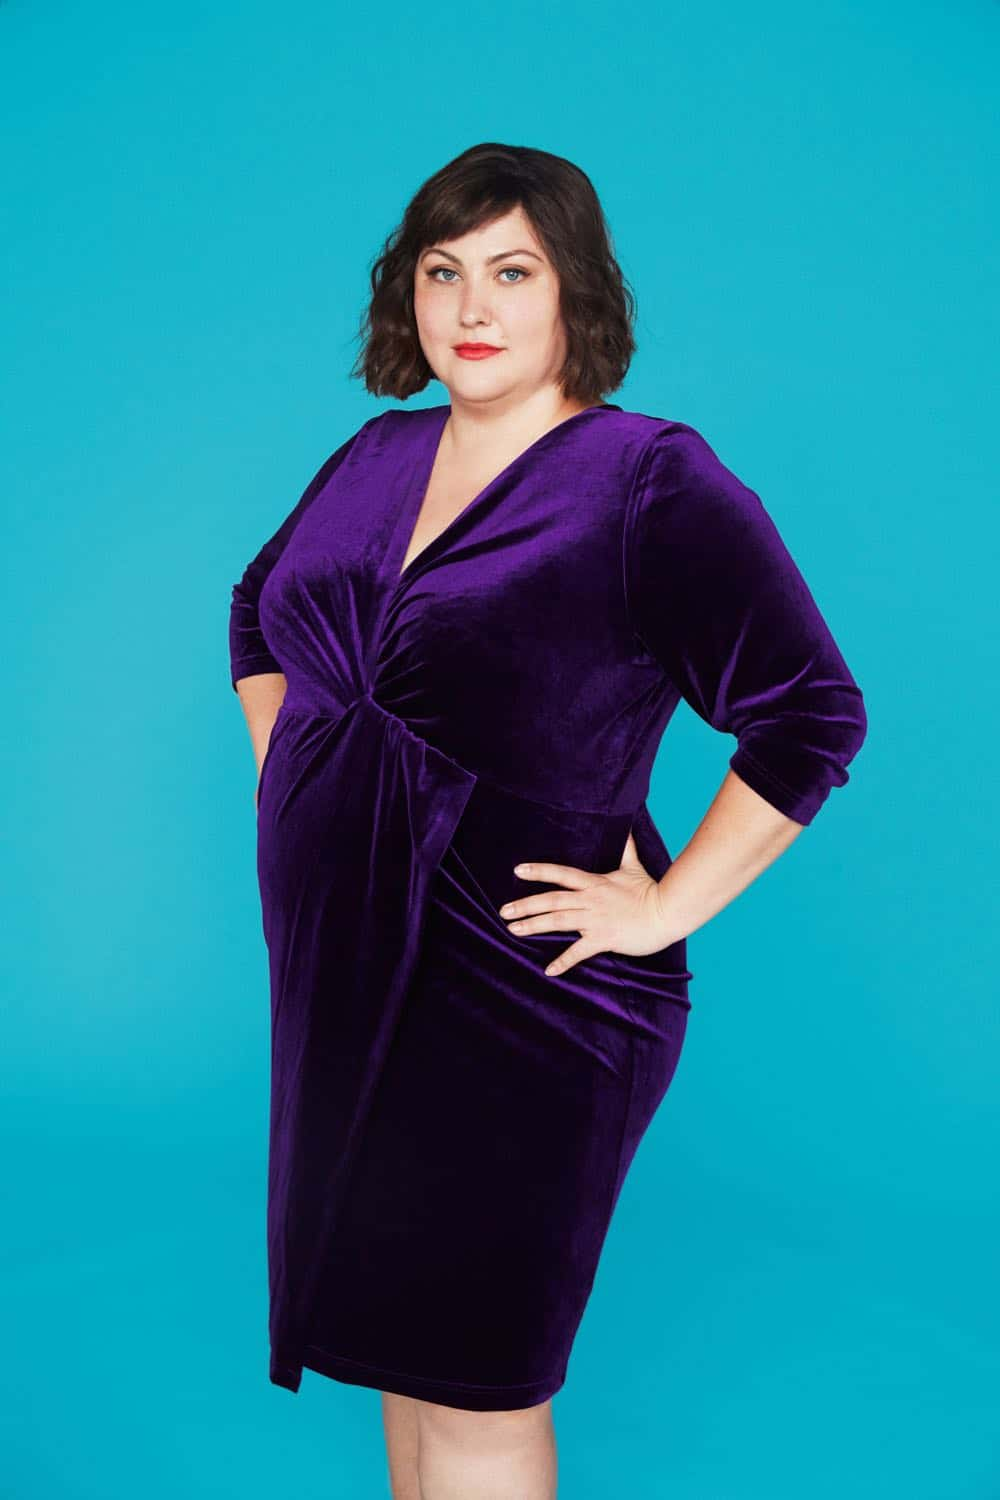 Joy Nash as Plum Kettle - Dietland _ Season 1, Gallery - Photo Credit: Erik Madigan Heck/AMC